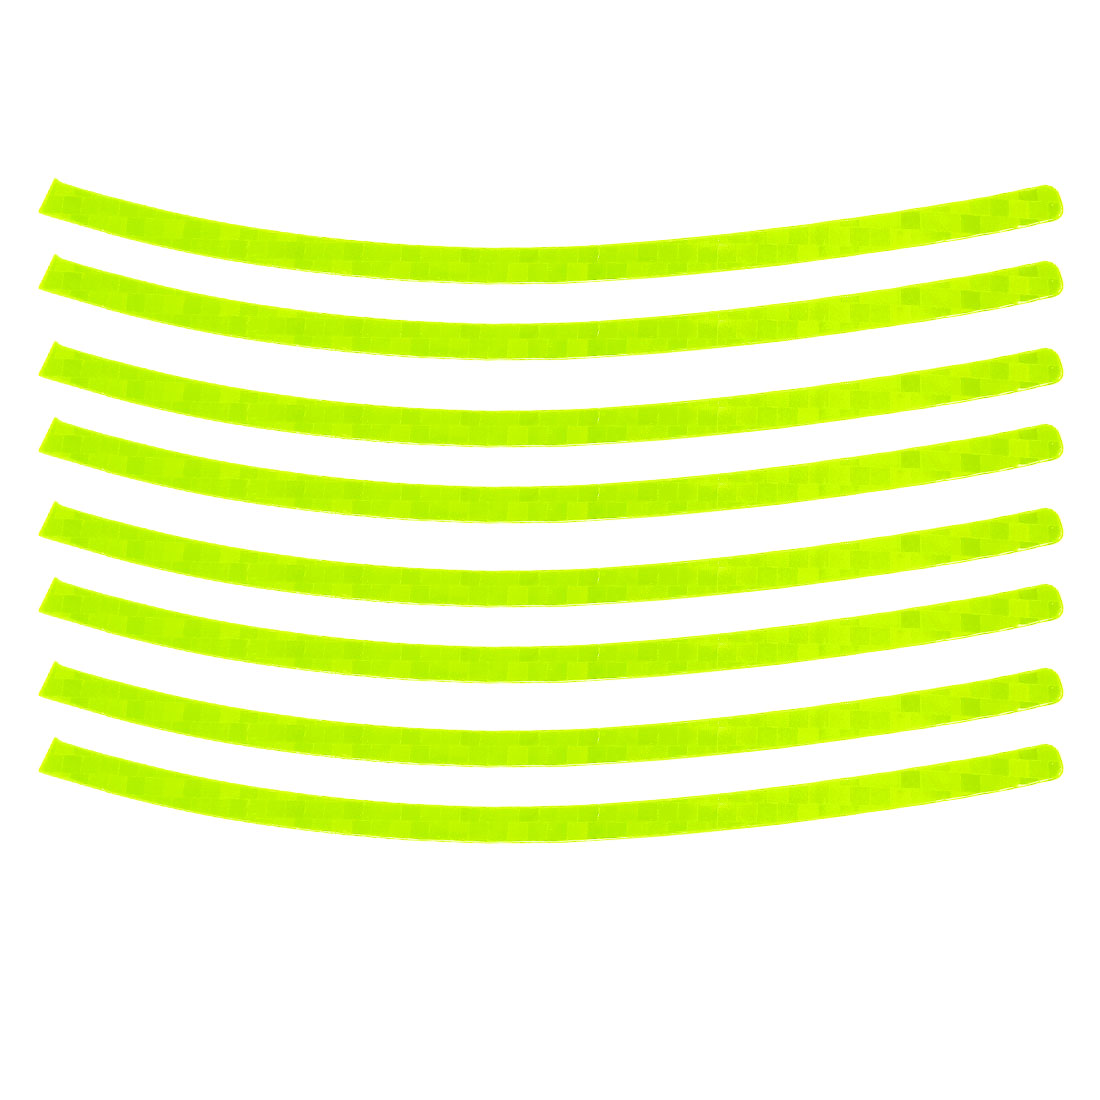 8pcs Yellow Green Self Adhesive Wheel Decals 0.8cm Width